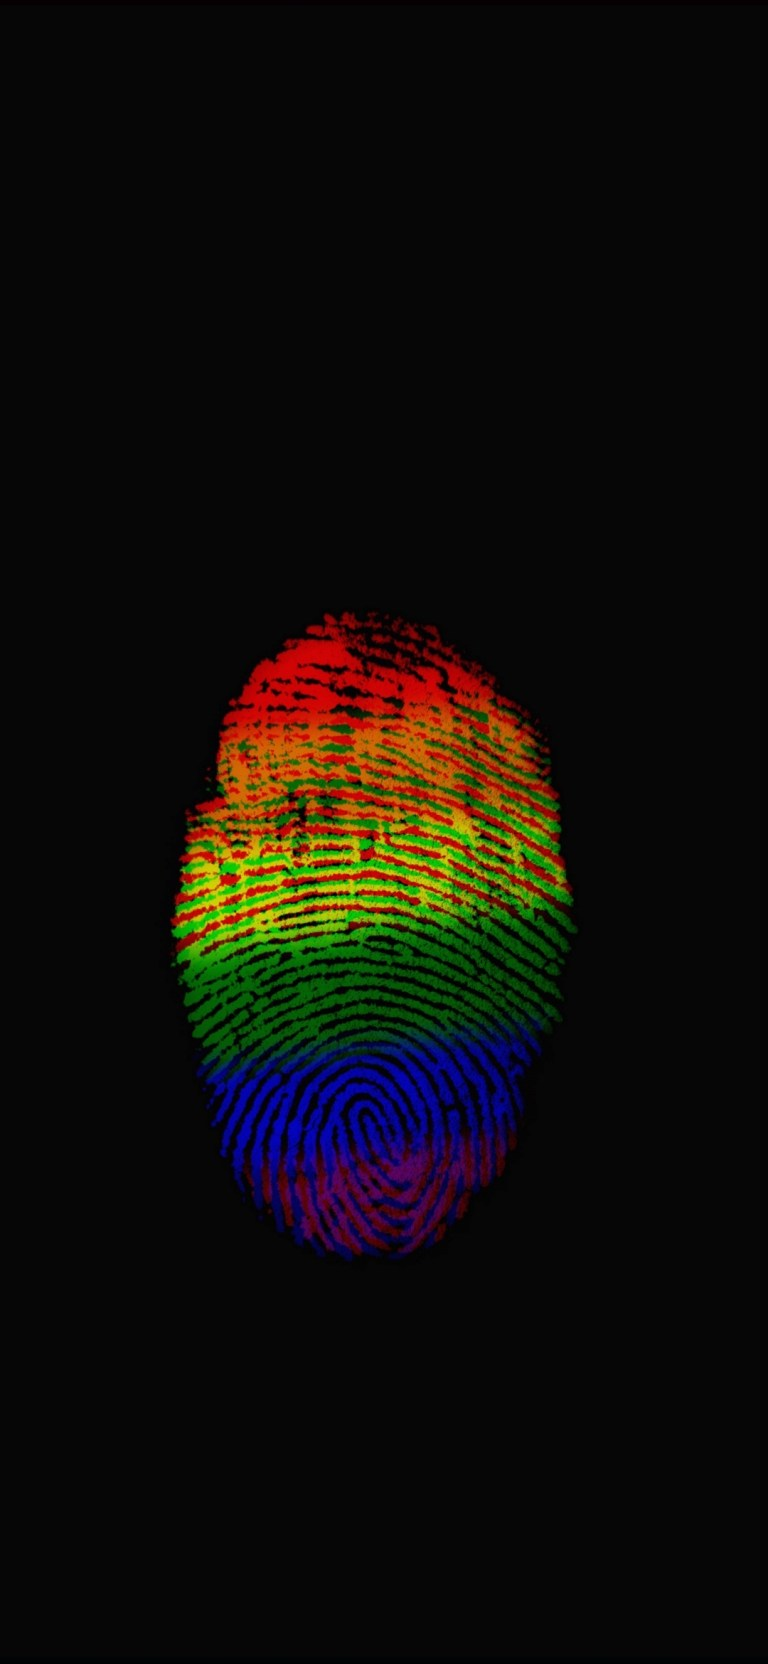 Rainbow Thumbs Fingerprint AMOLED Wallpaper For Samsung Galaxy